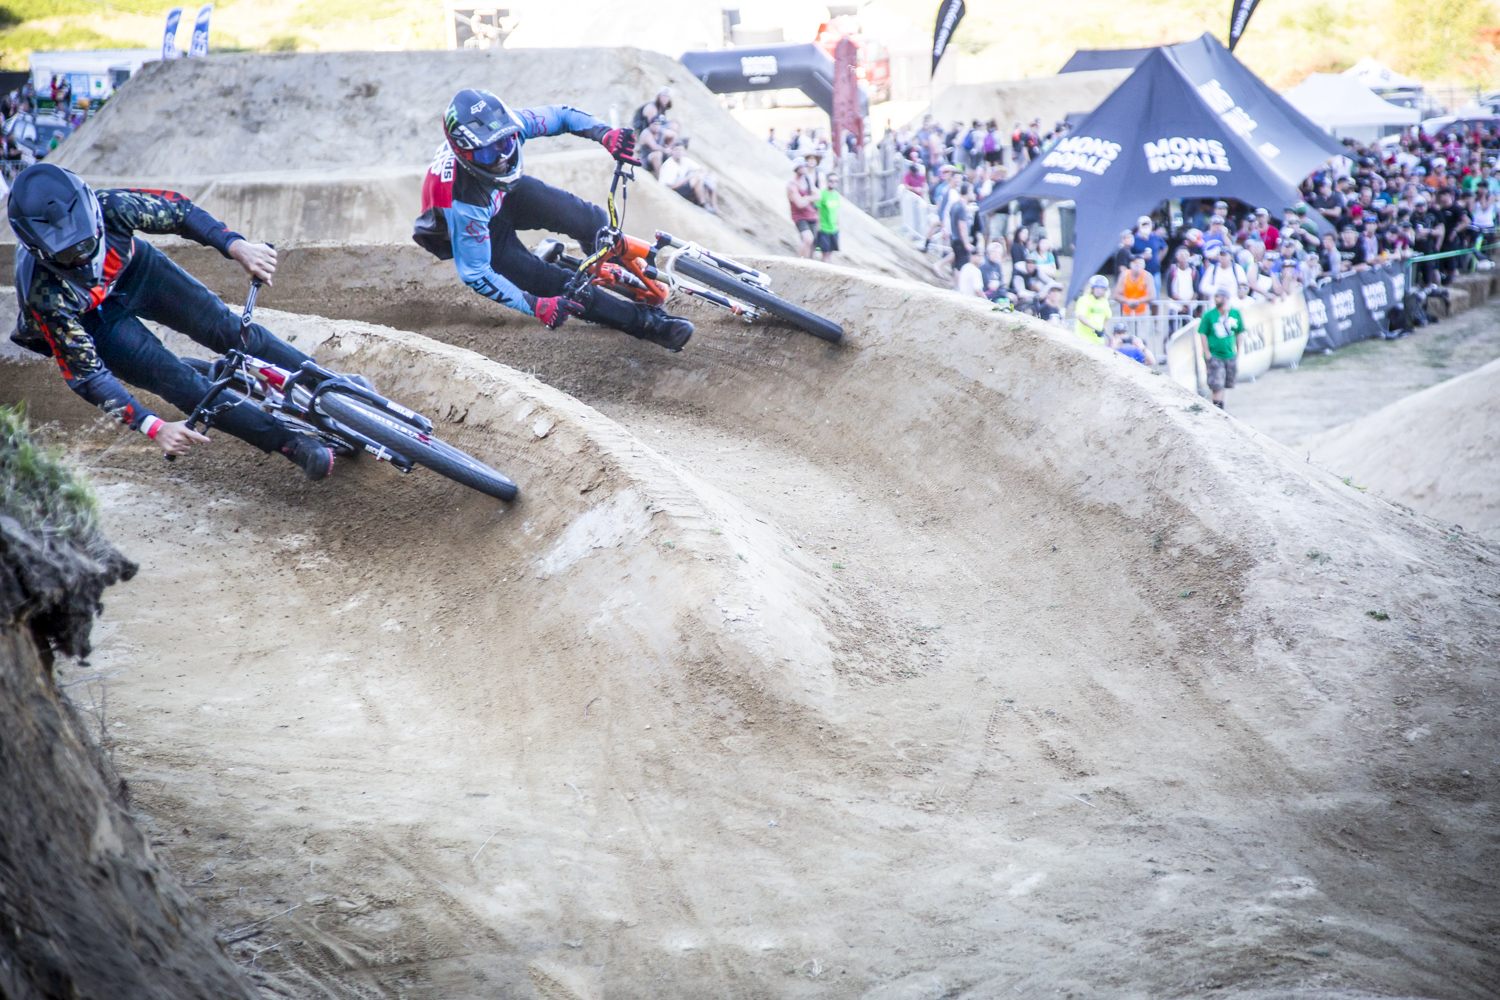 Nothing beats head-to-head racing - Sam Reynolds on the outside chasing Tomas Lemoine